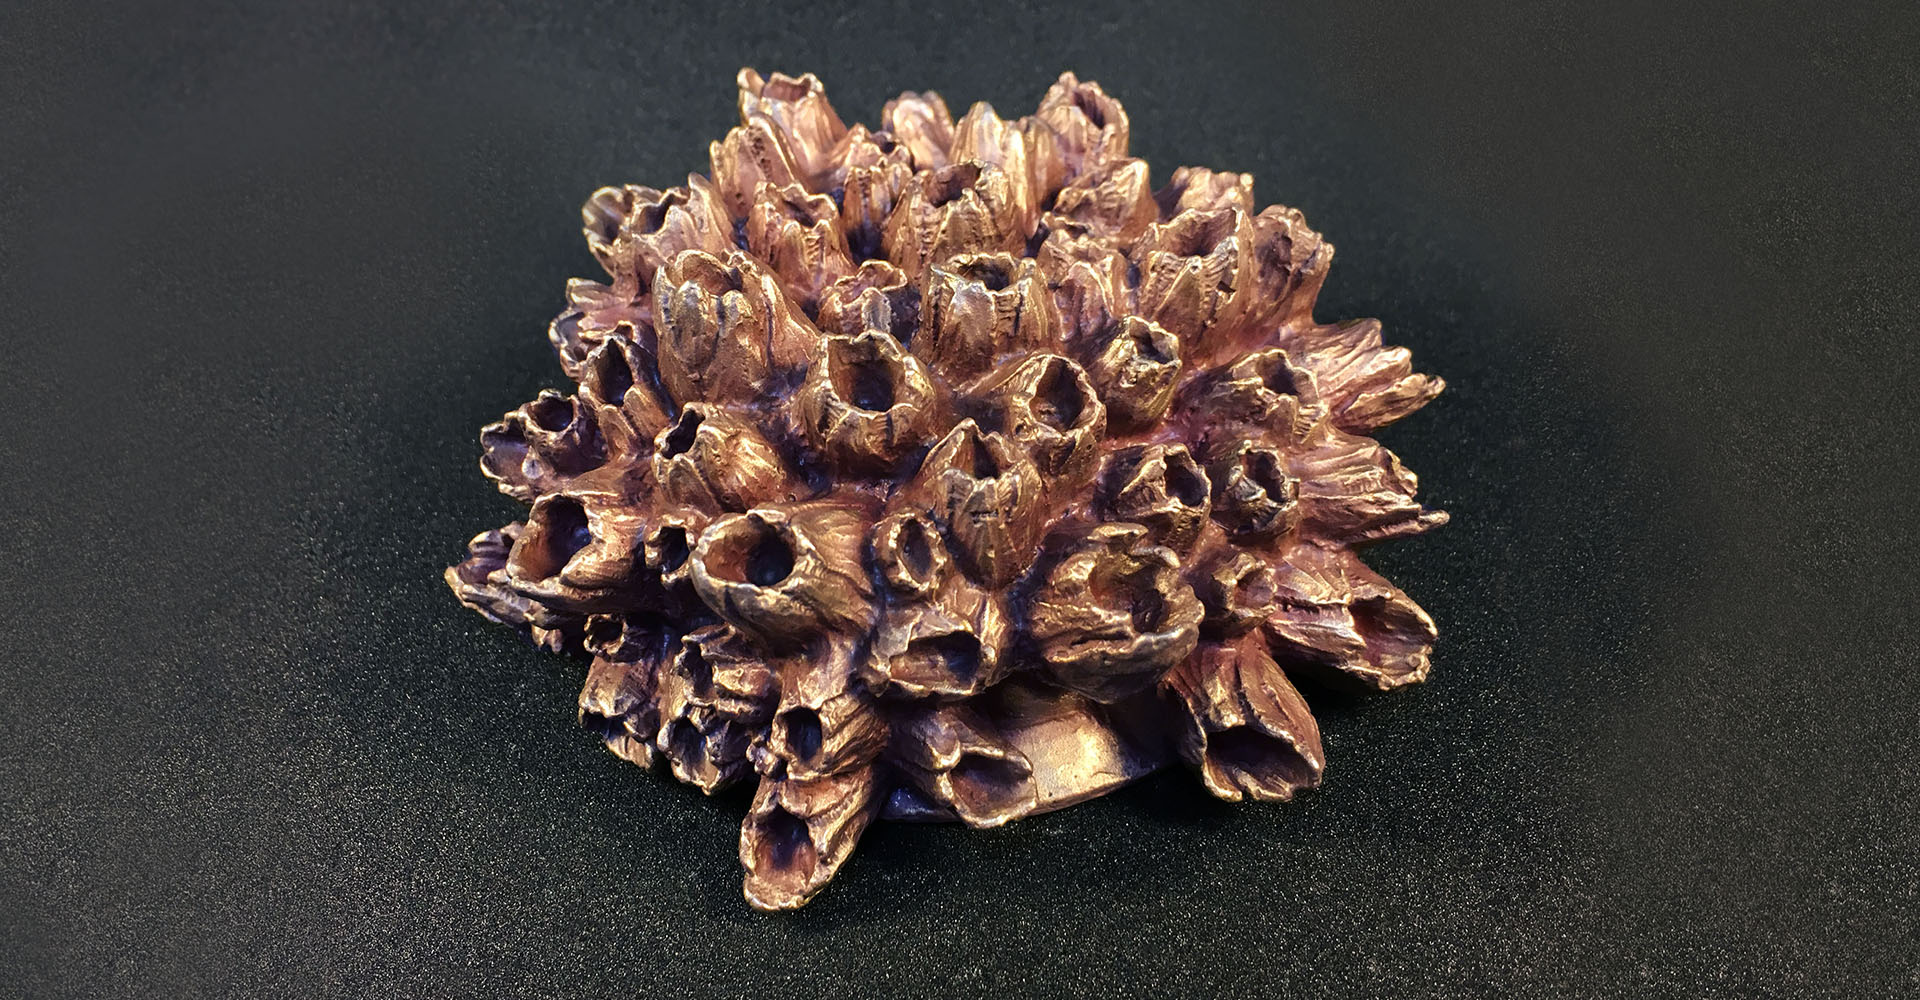 Purple barnacle art medal sculpture by artist Kate Ive showing marine nature growing on plastic waste